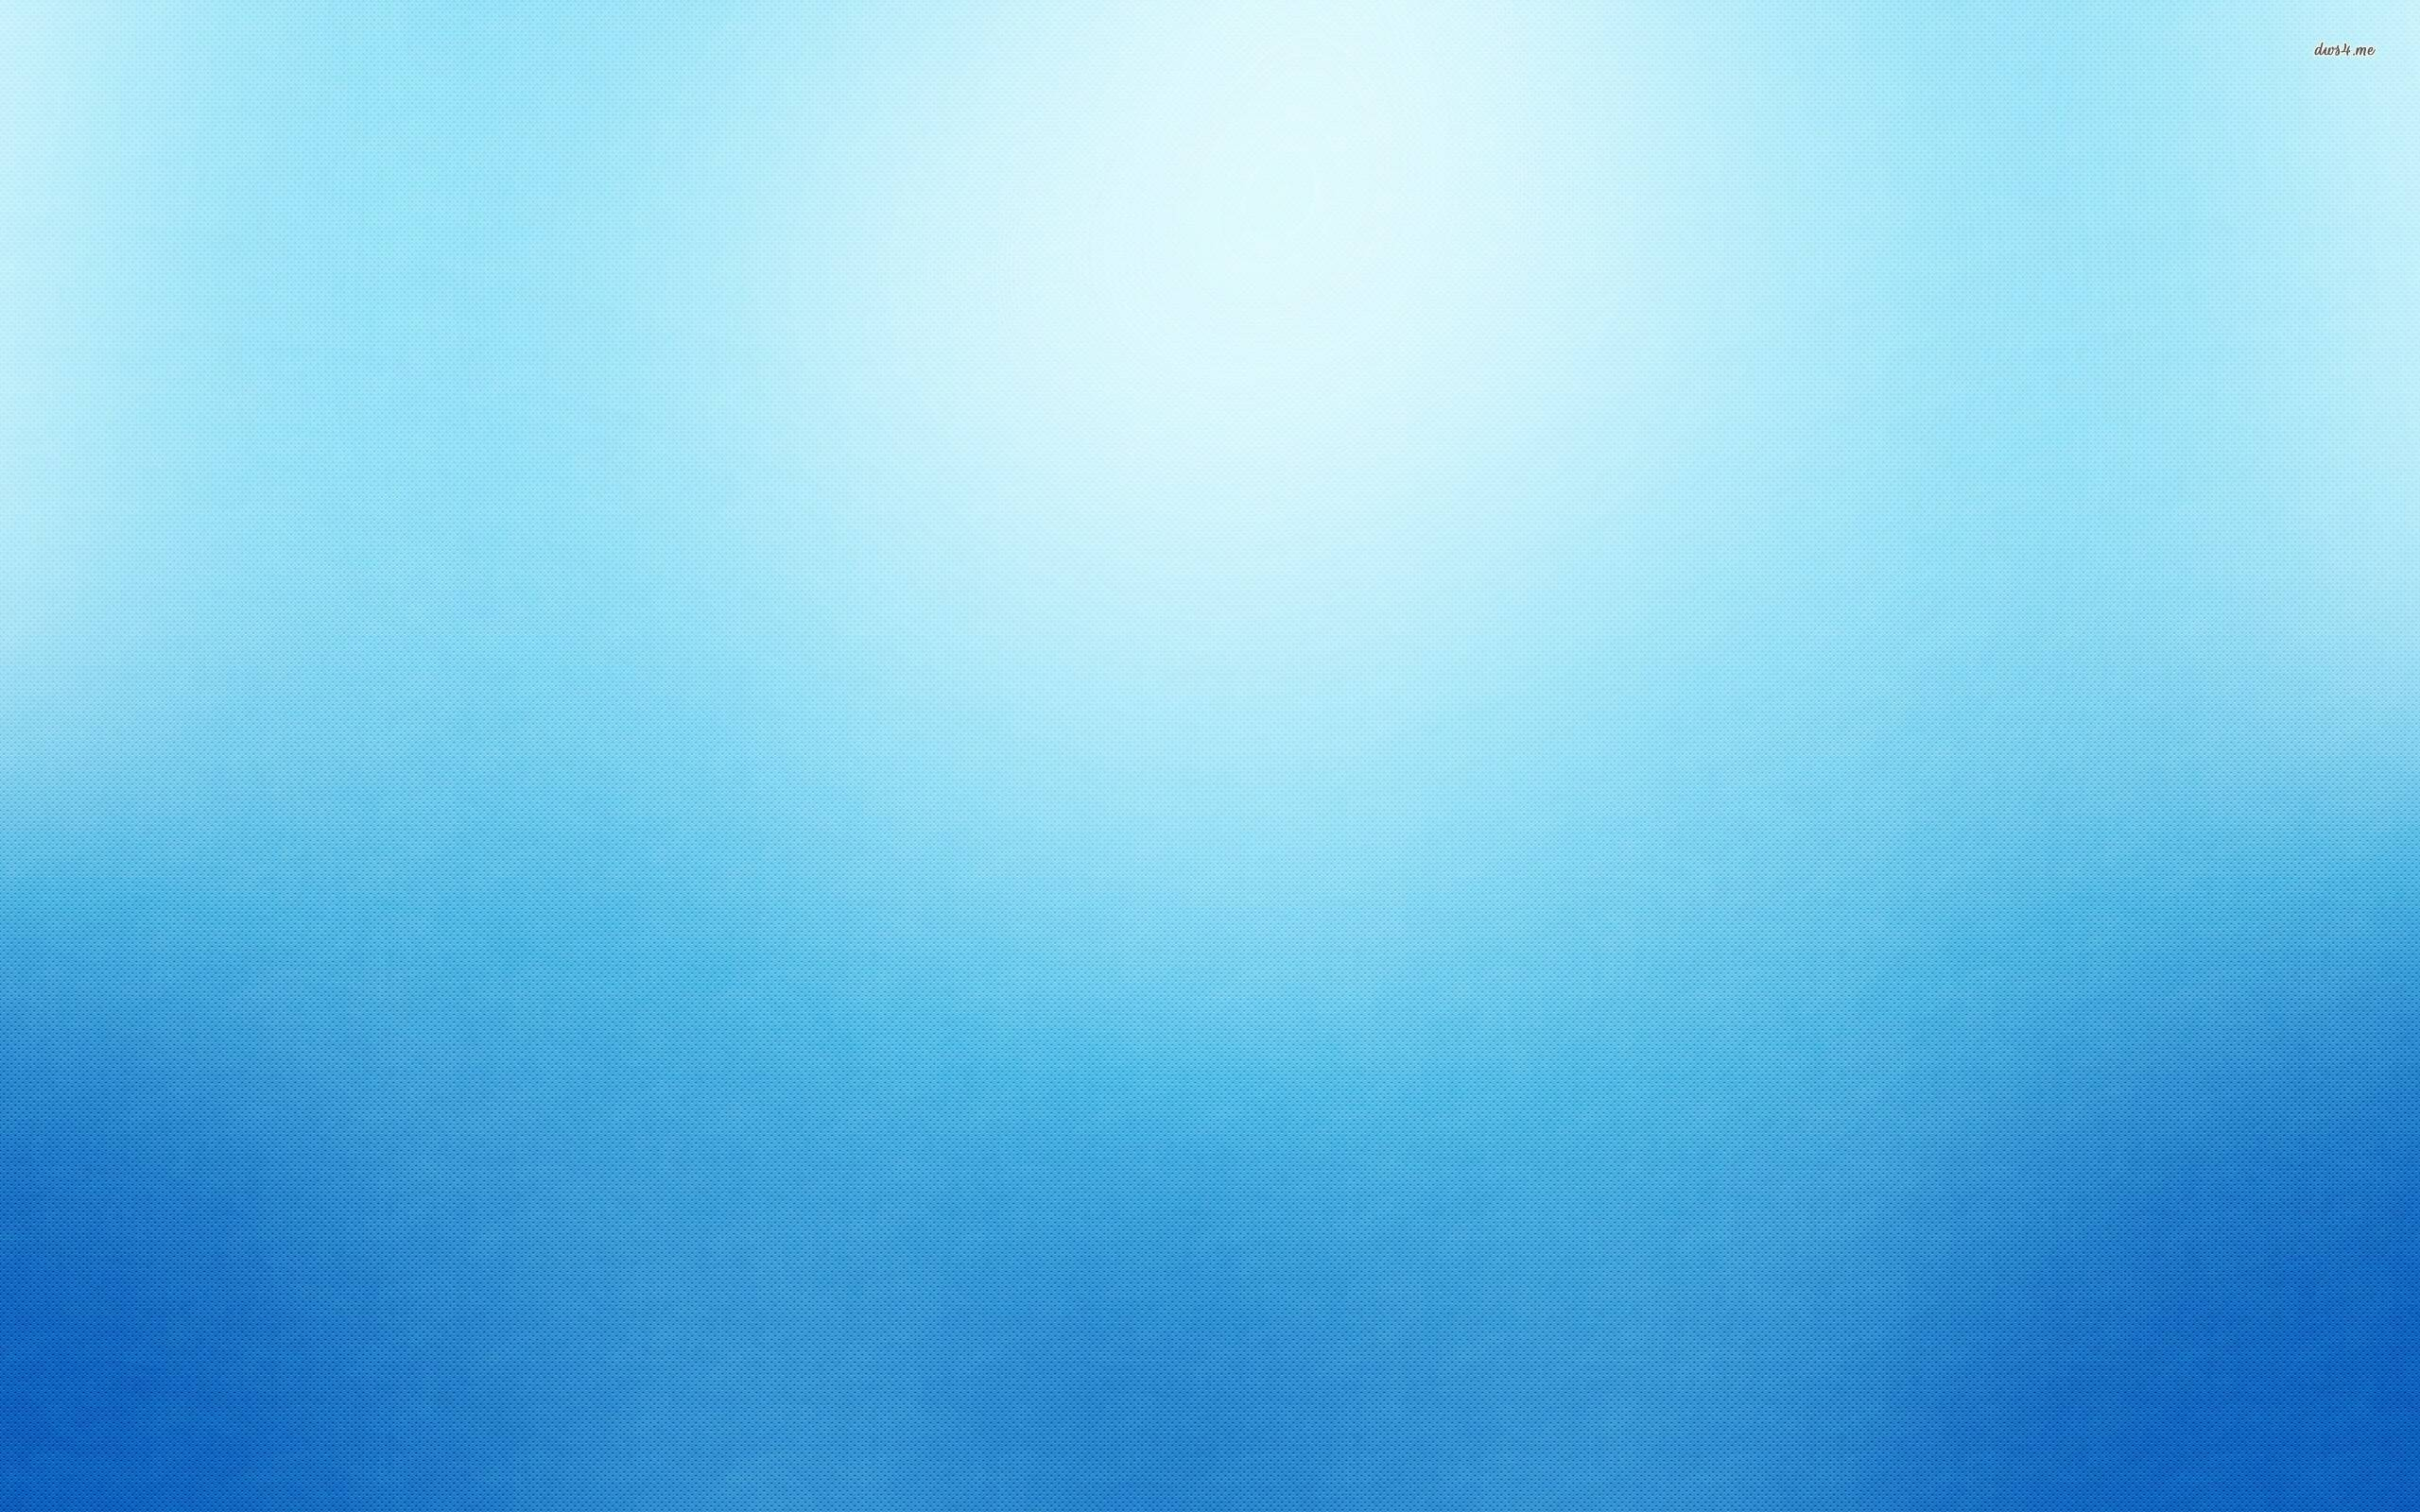 Light Blue Wallpapers - Wallpaper Cave